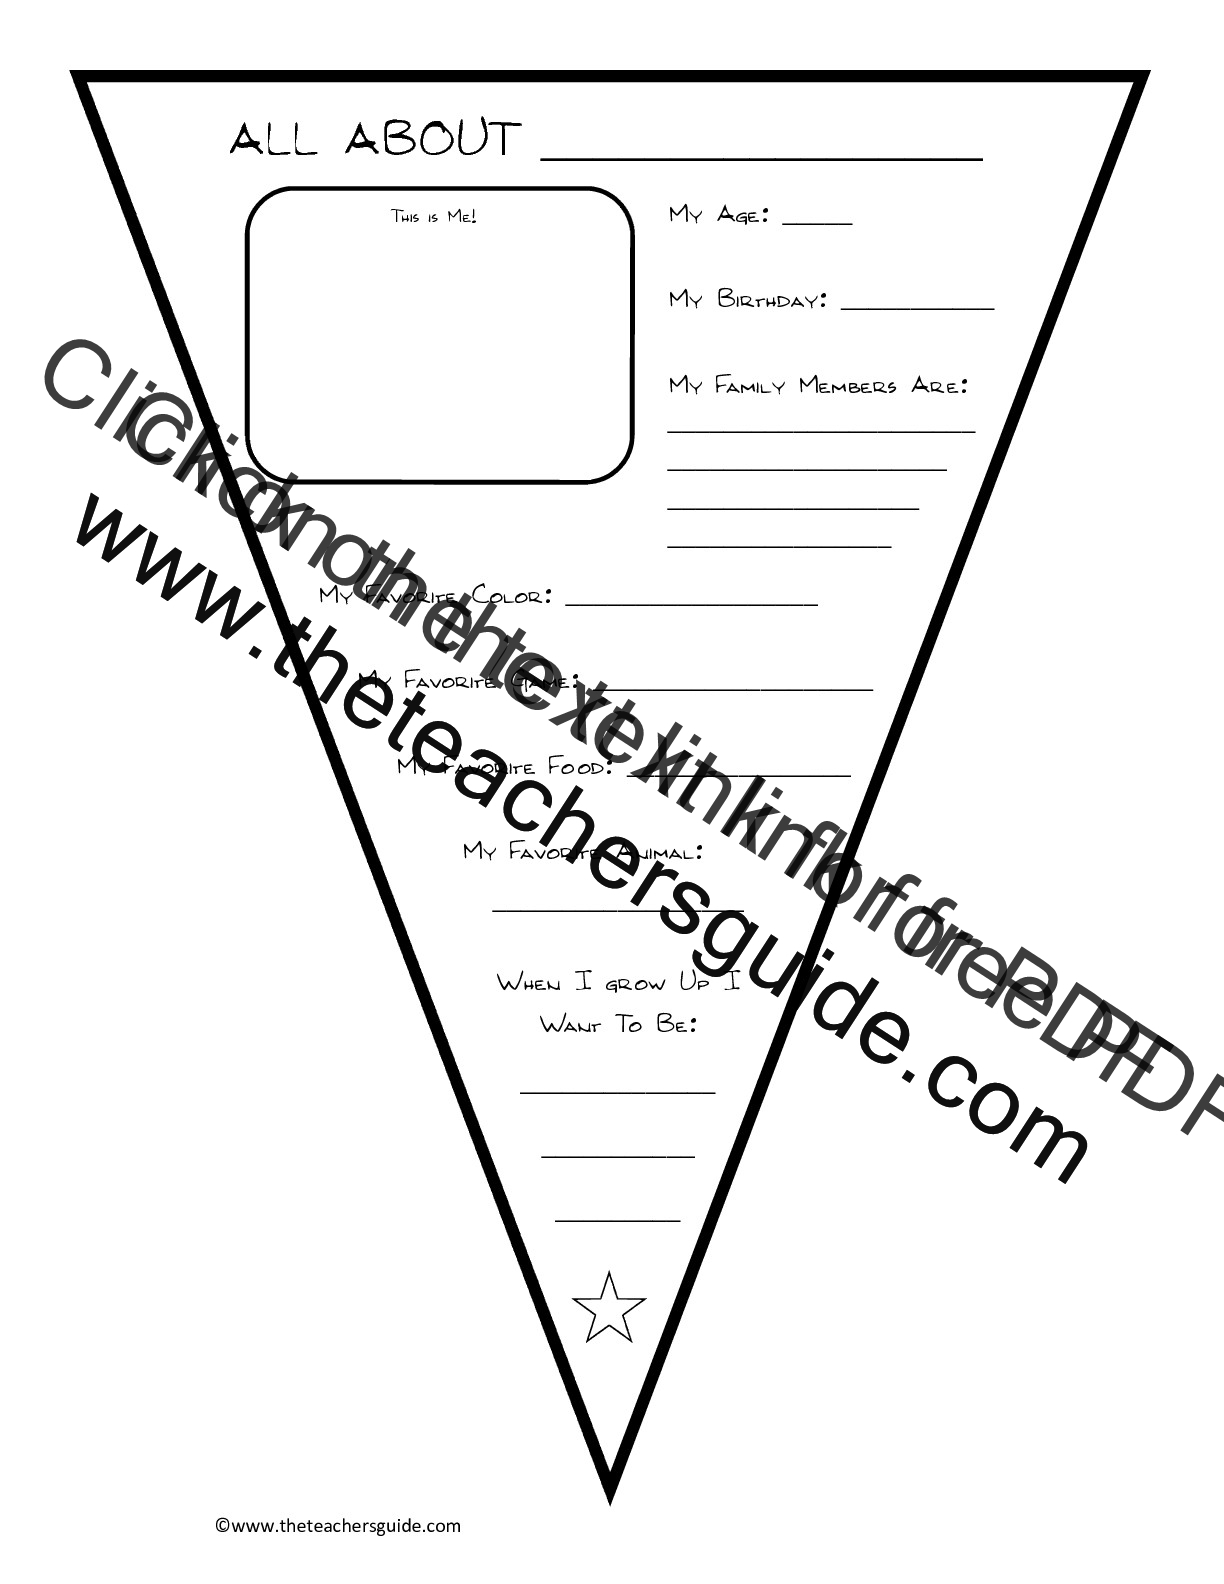 Printables Free All About Me Worksheet back to school printouts from the teachers guide about me worksheet